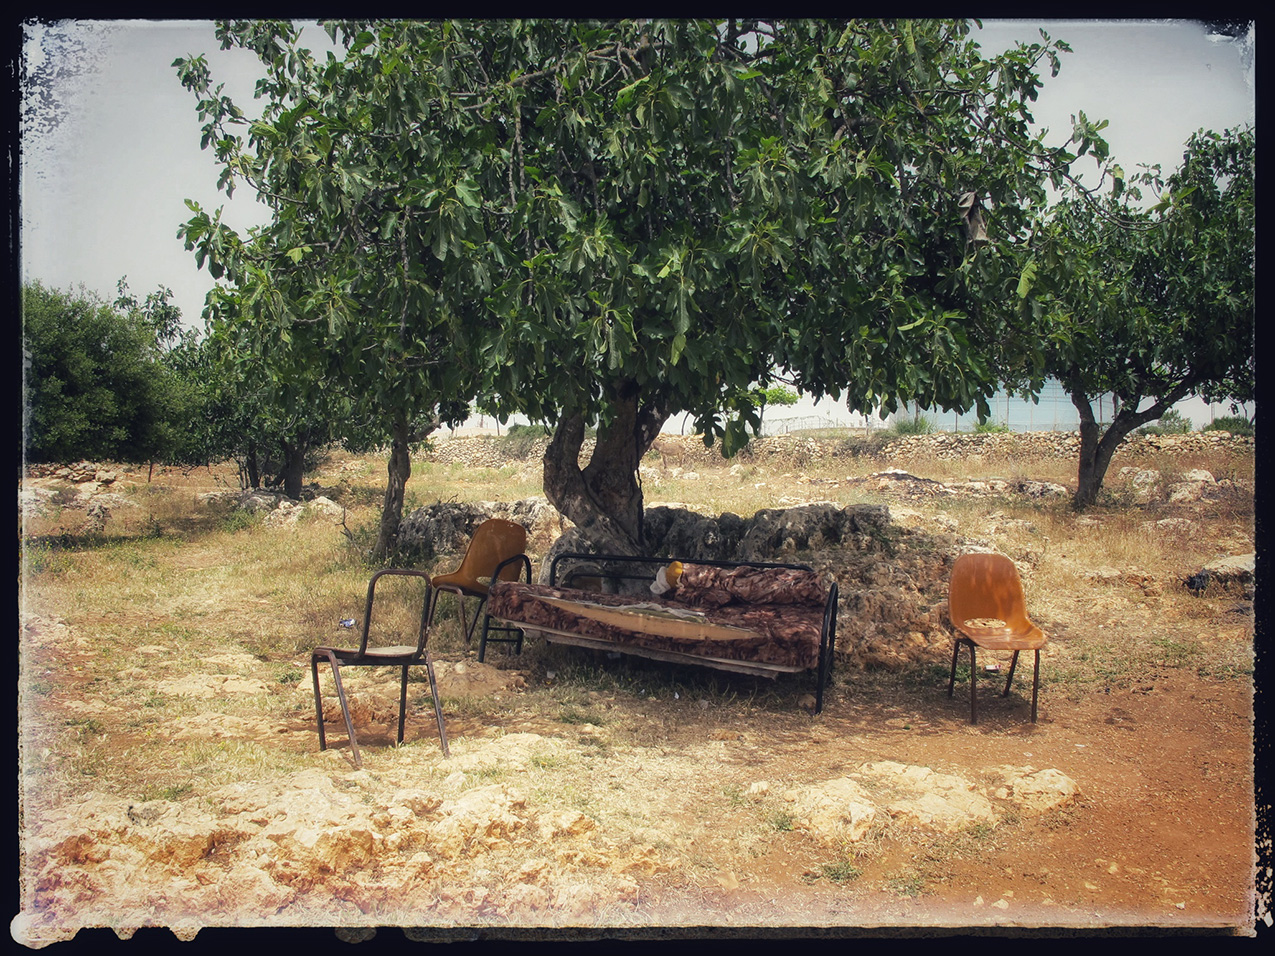 broken chairs and sofa underneath a tree's canopy